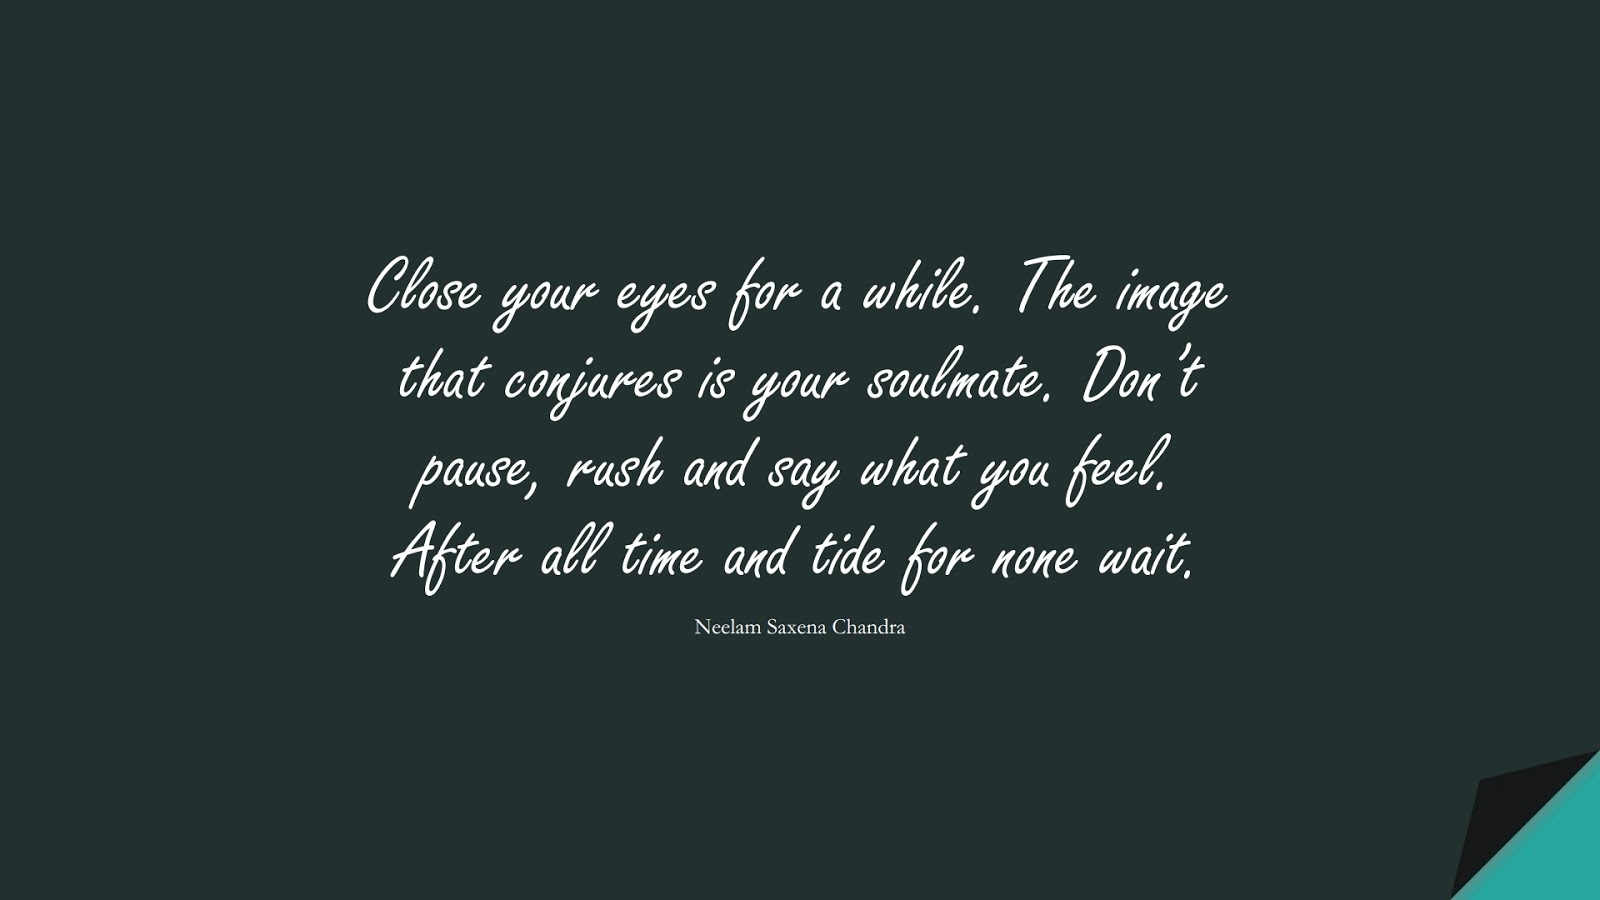 Close your eyes for a while. The image that conjures is your soulmate. Don't pause, rush and say what you feel. After all time and tide for none wait. (Neelam Saxena Chandra);  #LoveQuotes